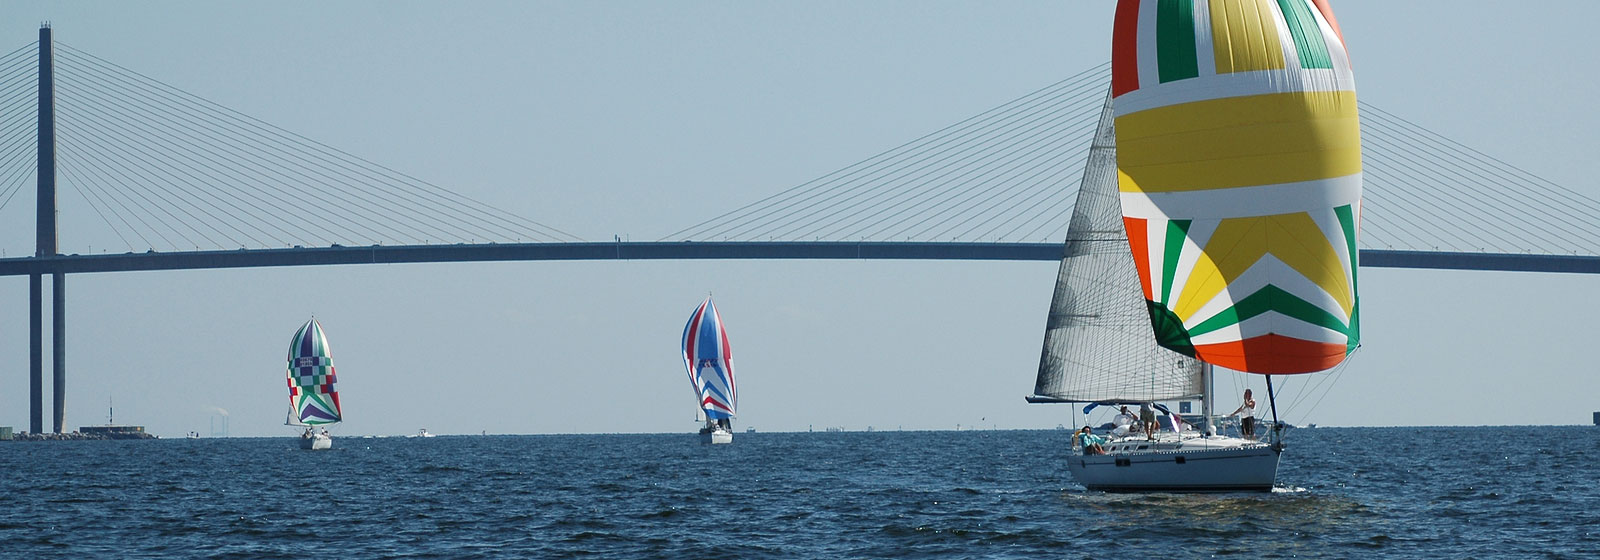 Yachts Racing by Skyway Bridge